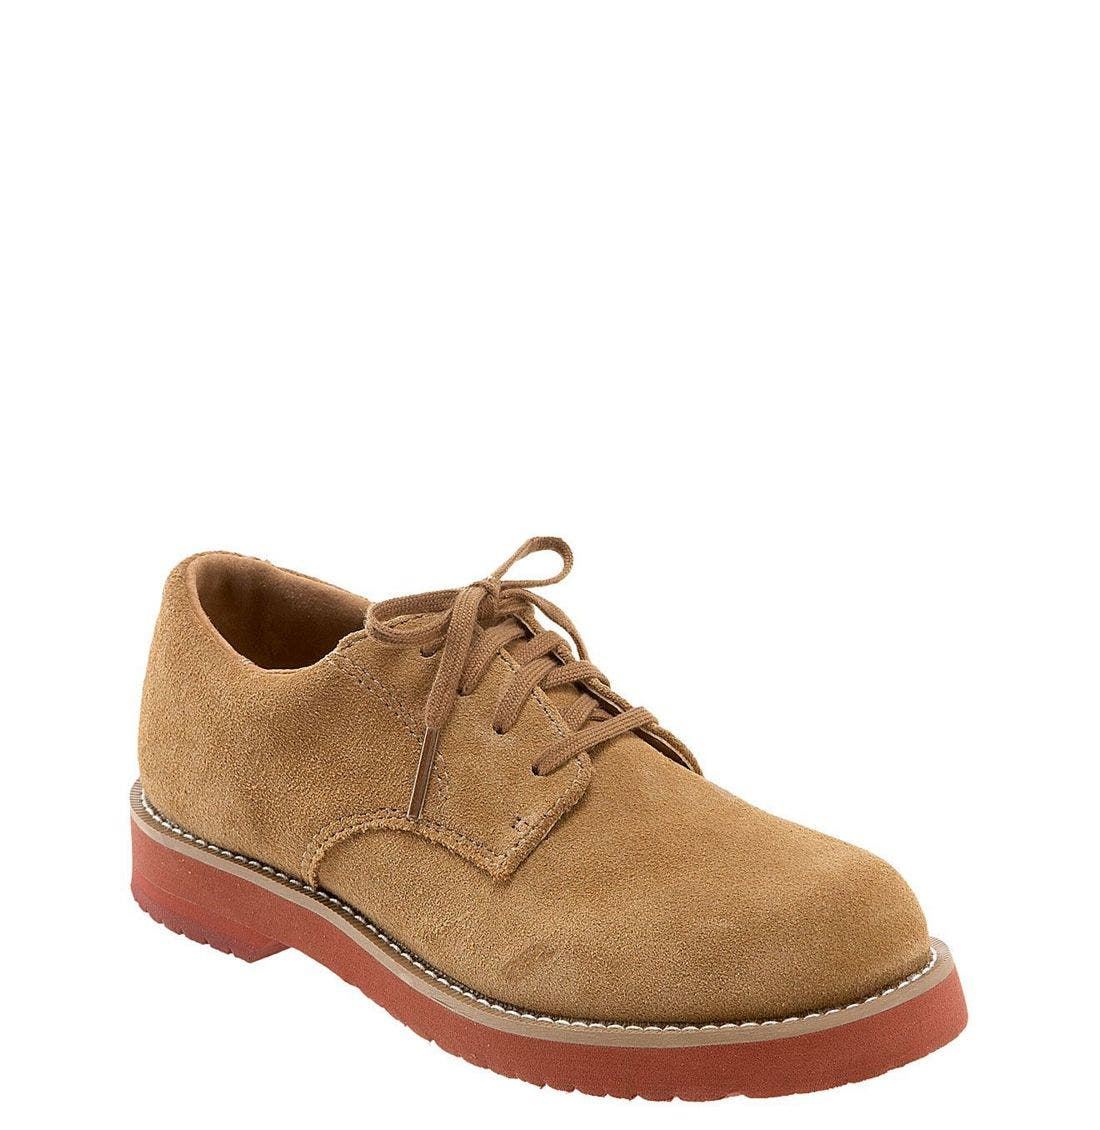 Main Image - Sperry Kids 'Tevin' Oxford (Walker, Toddler, Little Kid & Big Kid)